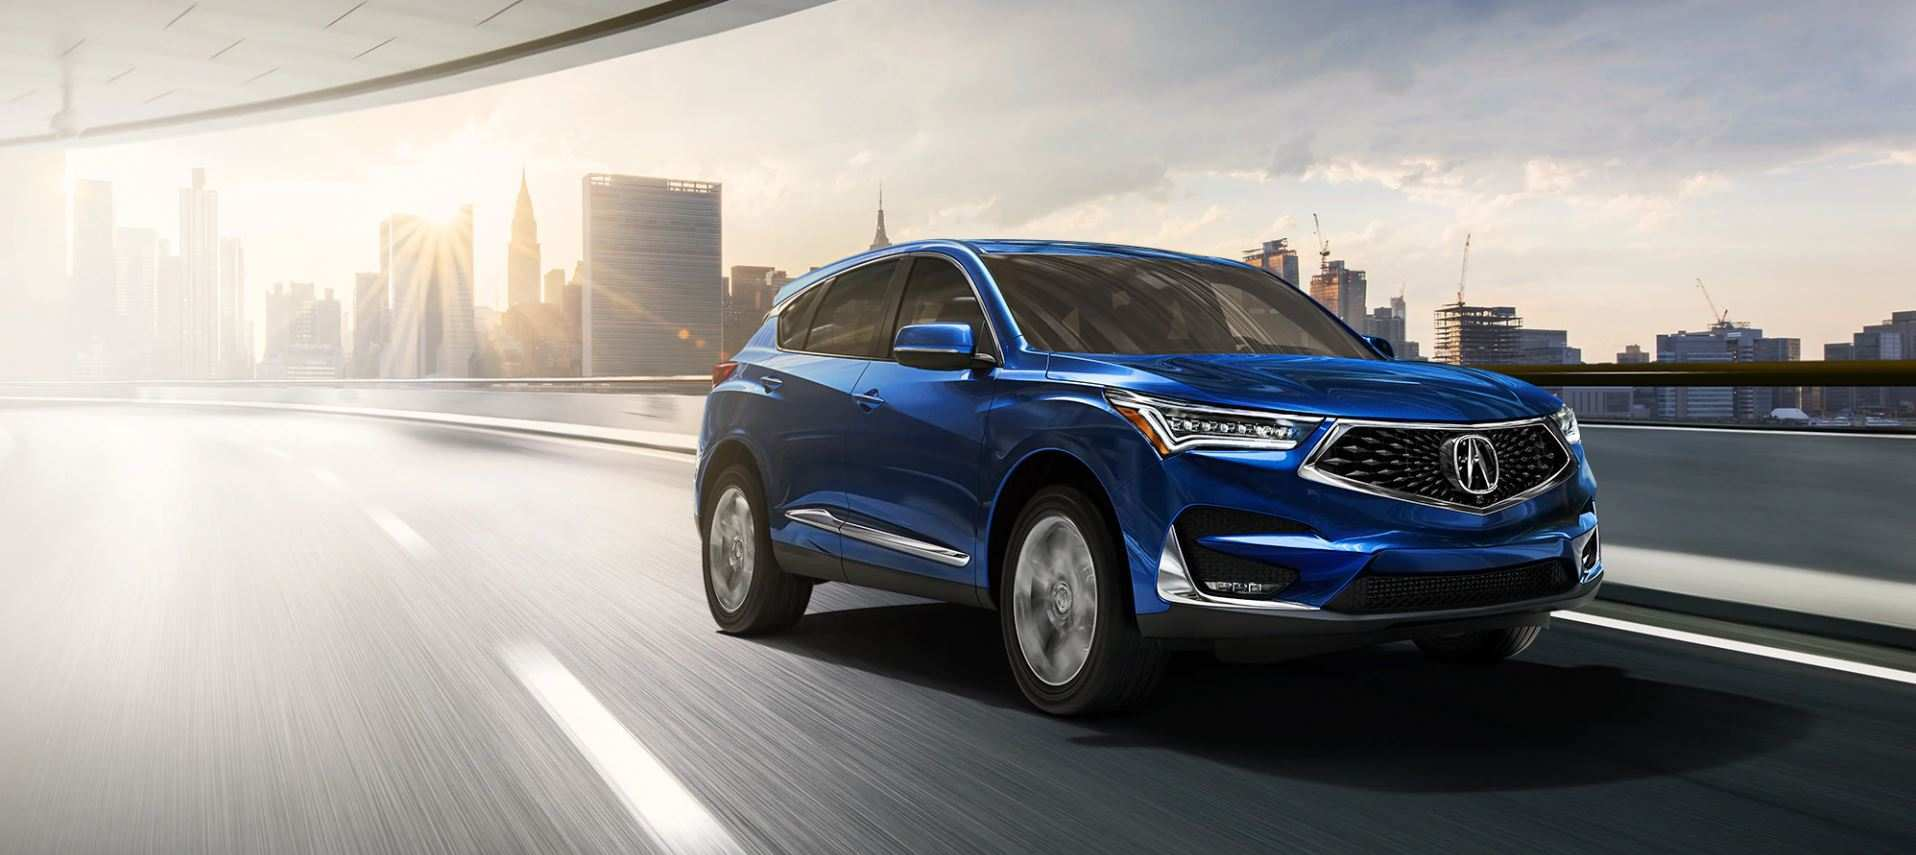 29 Best Review 2020 Acura Rdx For Sale Model with 2020 Acura Rdx For Sale